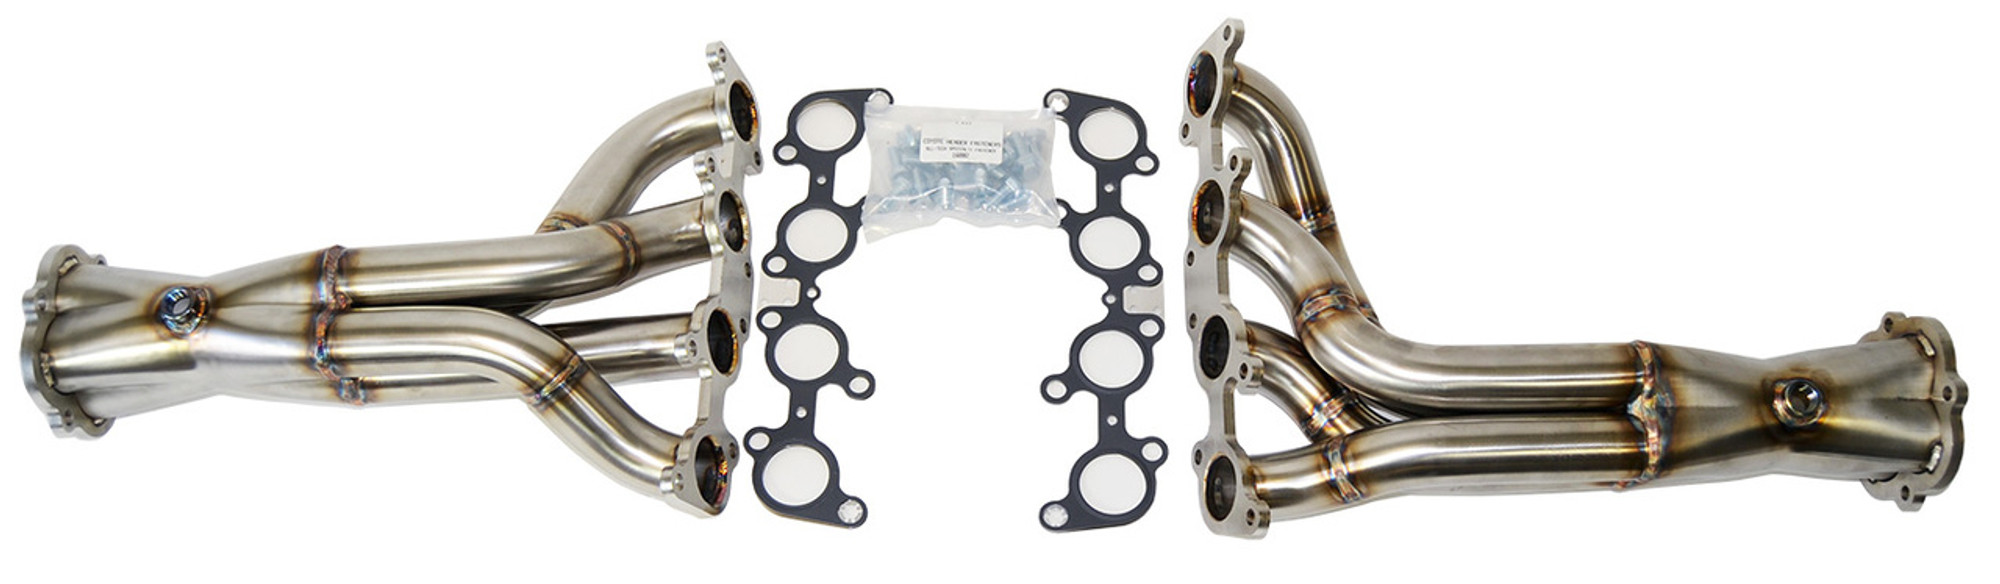 16267 stainless 50 coyote 4 into 4 headers factory five parts 16267 stainless 50 coyote 4 into 4 headers malvernweather Image collections